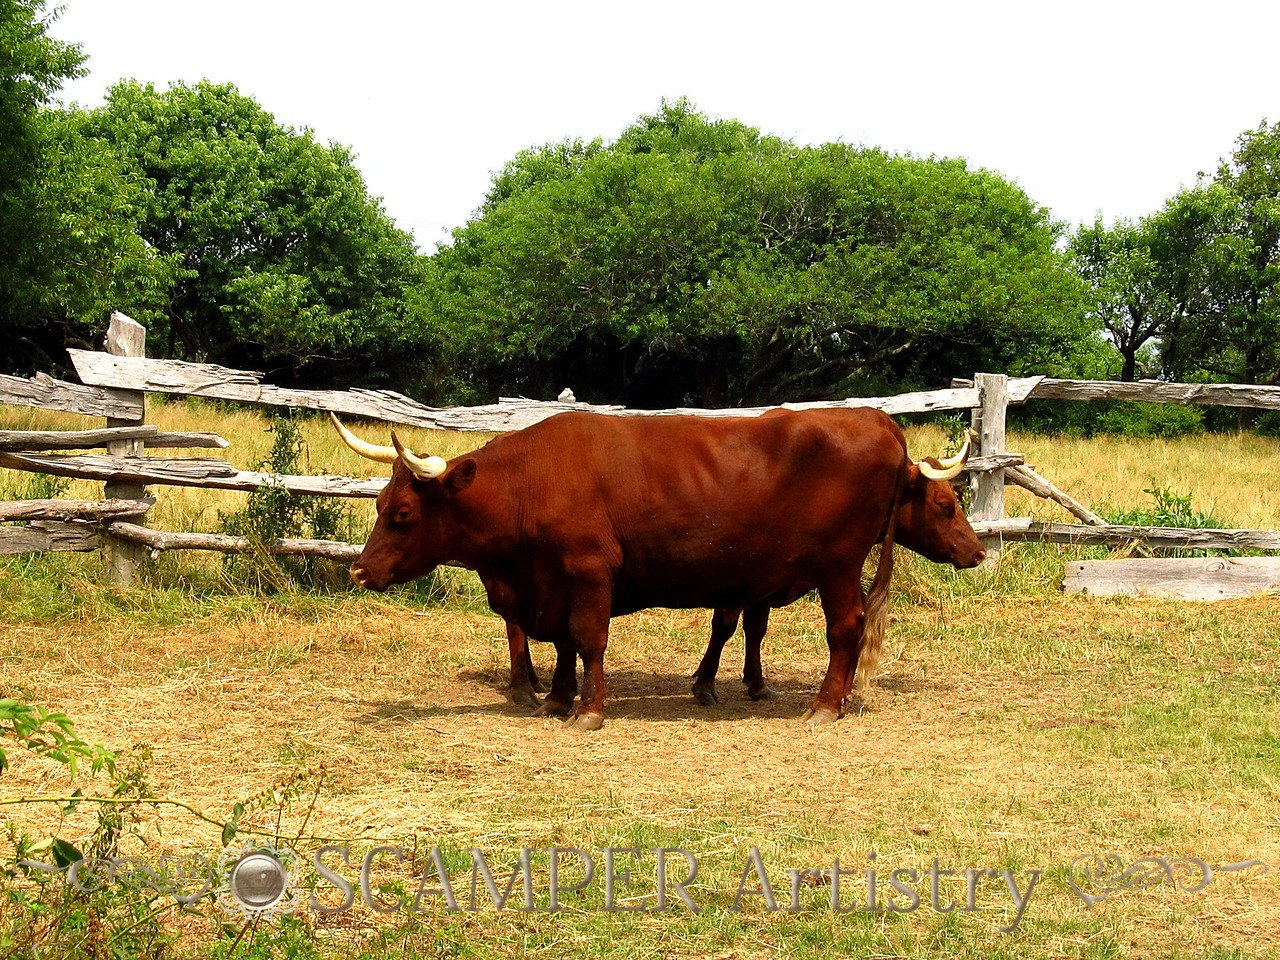 Plymoth Plantation cattle